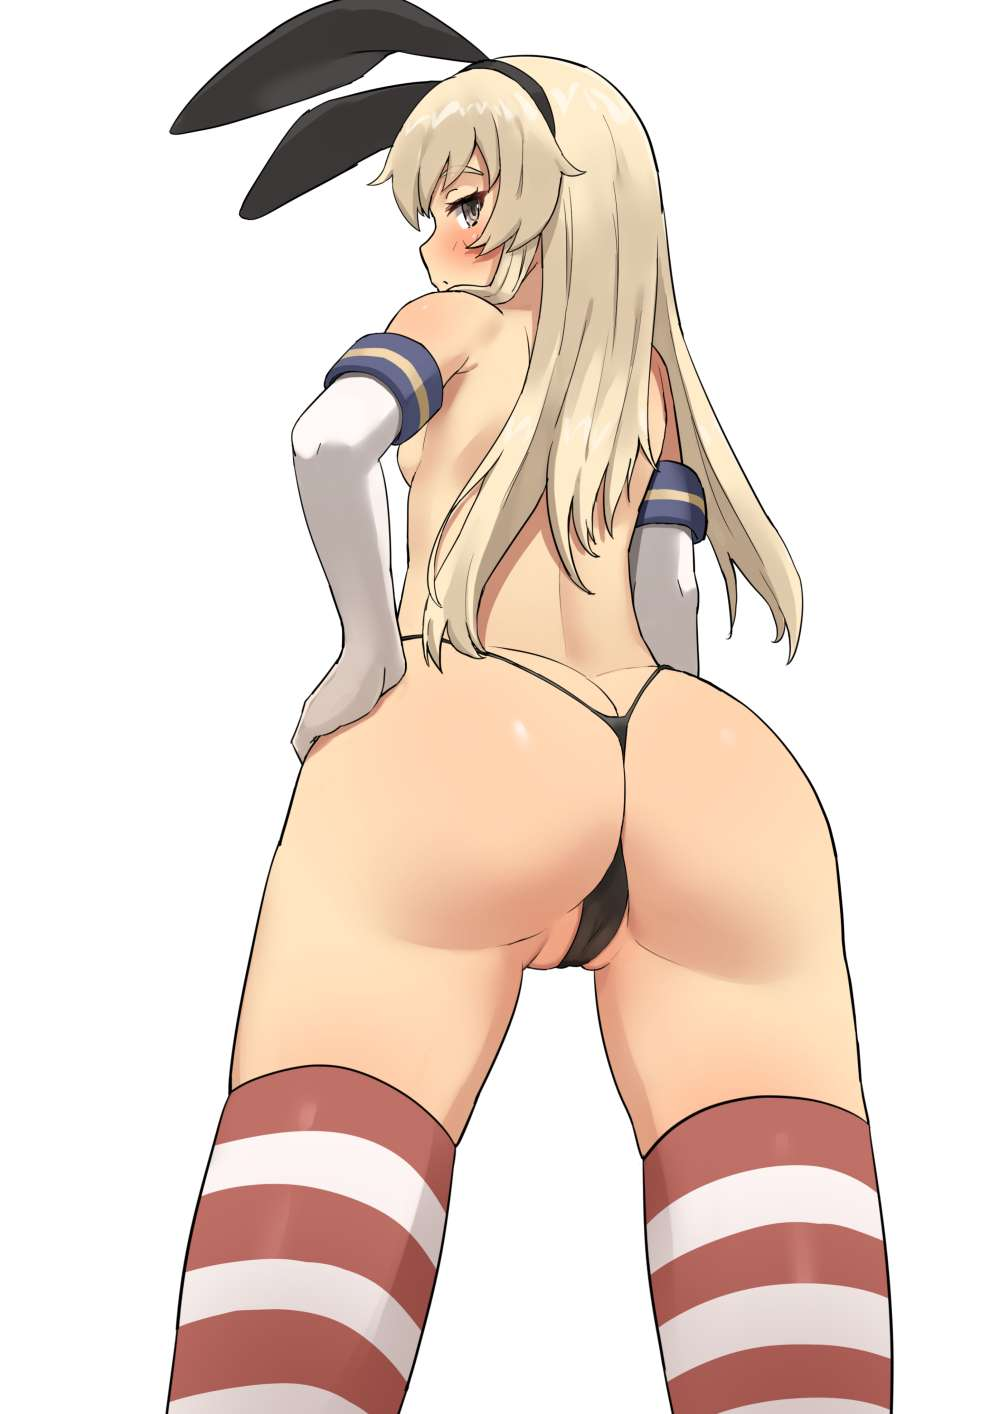 1girl animal_ears arm_at_side ass back bangs black_panties blonde_hair blush breasts bunny_ears butt_crack cameltoe cowboy_shot elbow_gloves eyebrows_visible_through_hair from_behind gloves hair_ornament hairband hand_on_hip highleg highleg_panties highres horizontal-striped_legwear horizontal_stripes kantai_collection legs_apart long_hair looking_at_viewer looking_back no_bra panties partially_visible_vulva shimakaze_(kantai_collection) sideboob sideways_glance sideways_mouth simple_background skindentation small_breasts solo soushou_nin striped striped_legwear thick_eyebrows thighhighs thighs thong topless twisted_neck underwear white_background white_gloves